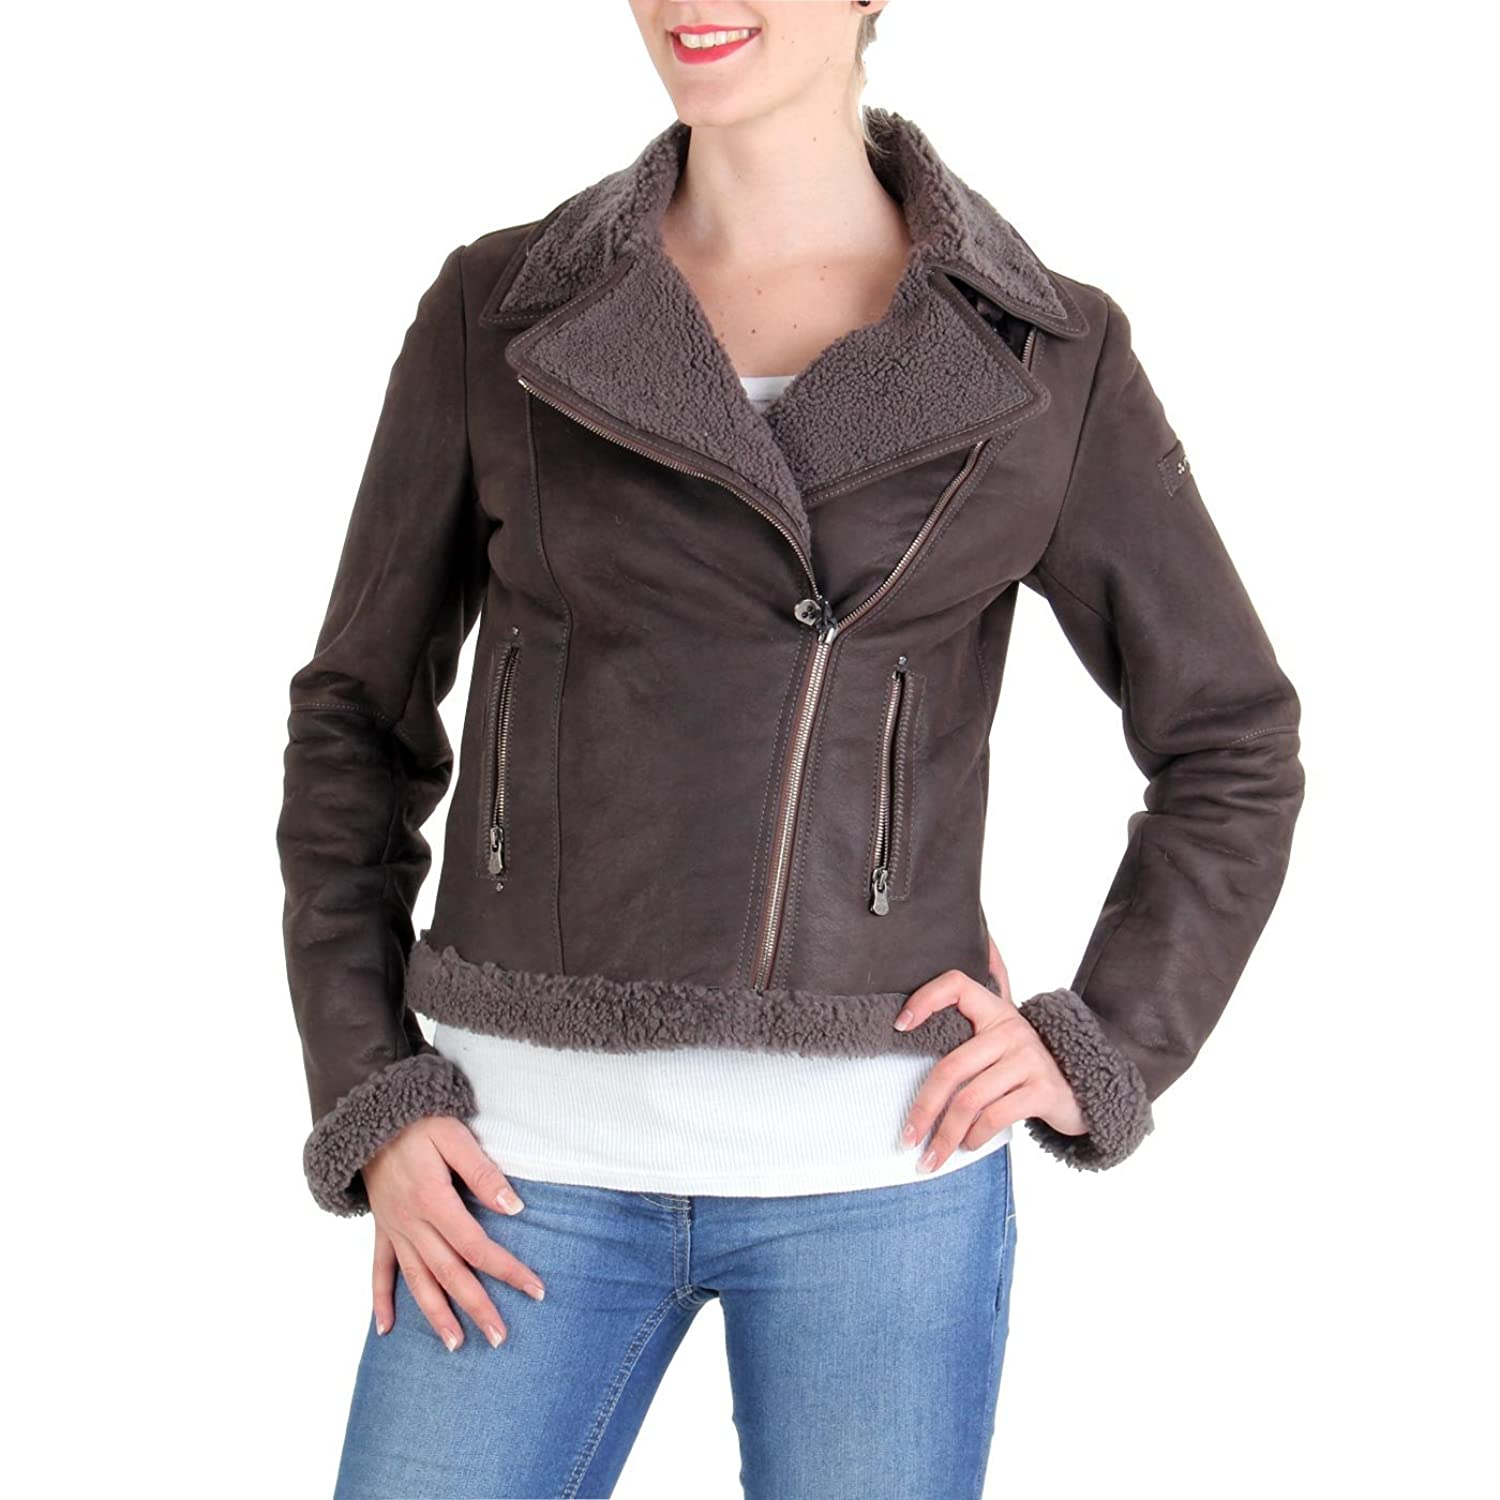 PEUTEREY Damen Winter Lederjacke Kiki Dark Brown 458 günstig kaufen